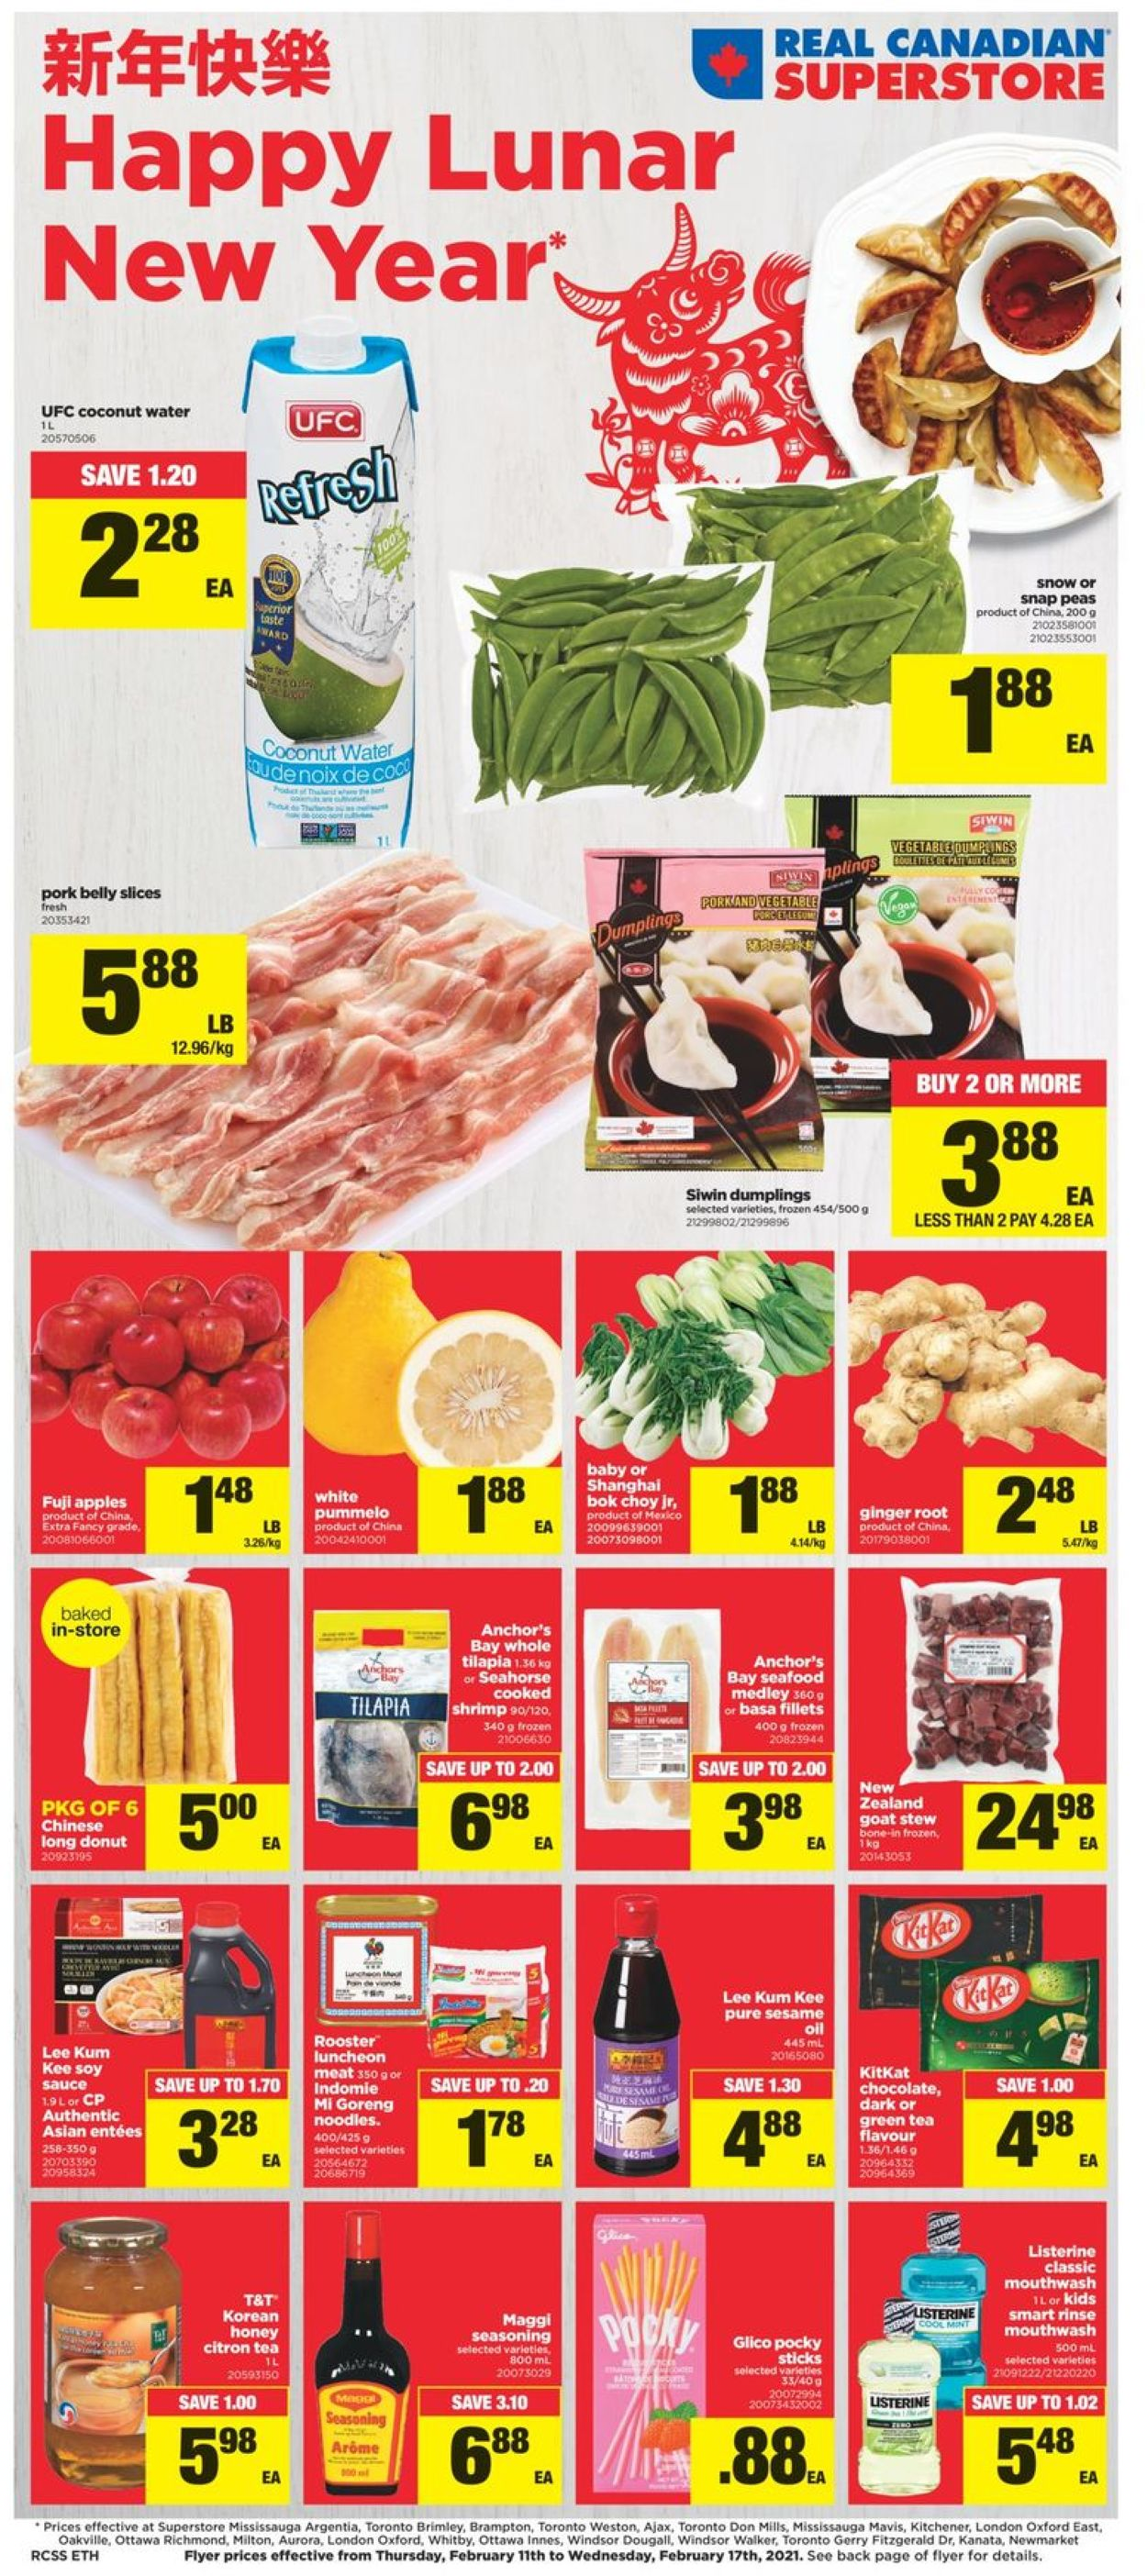 Real Canadian Superstore - Happy Lunar New Year 2021 Flyer - 02/11-02/17/2021